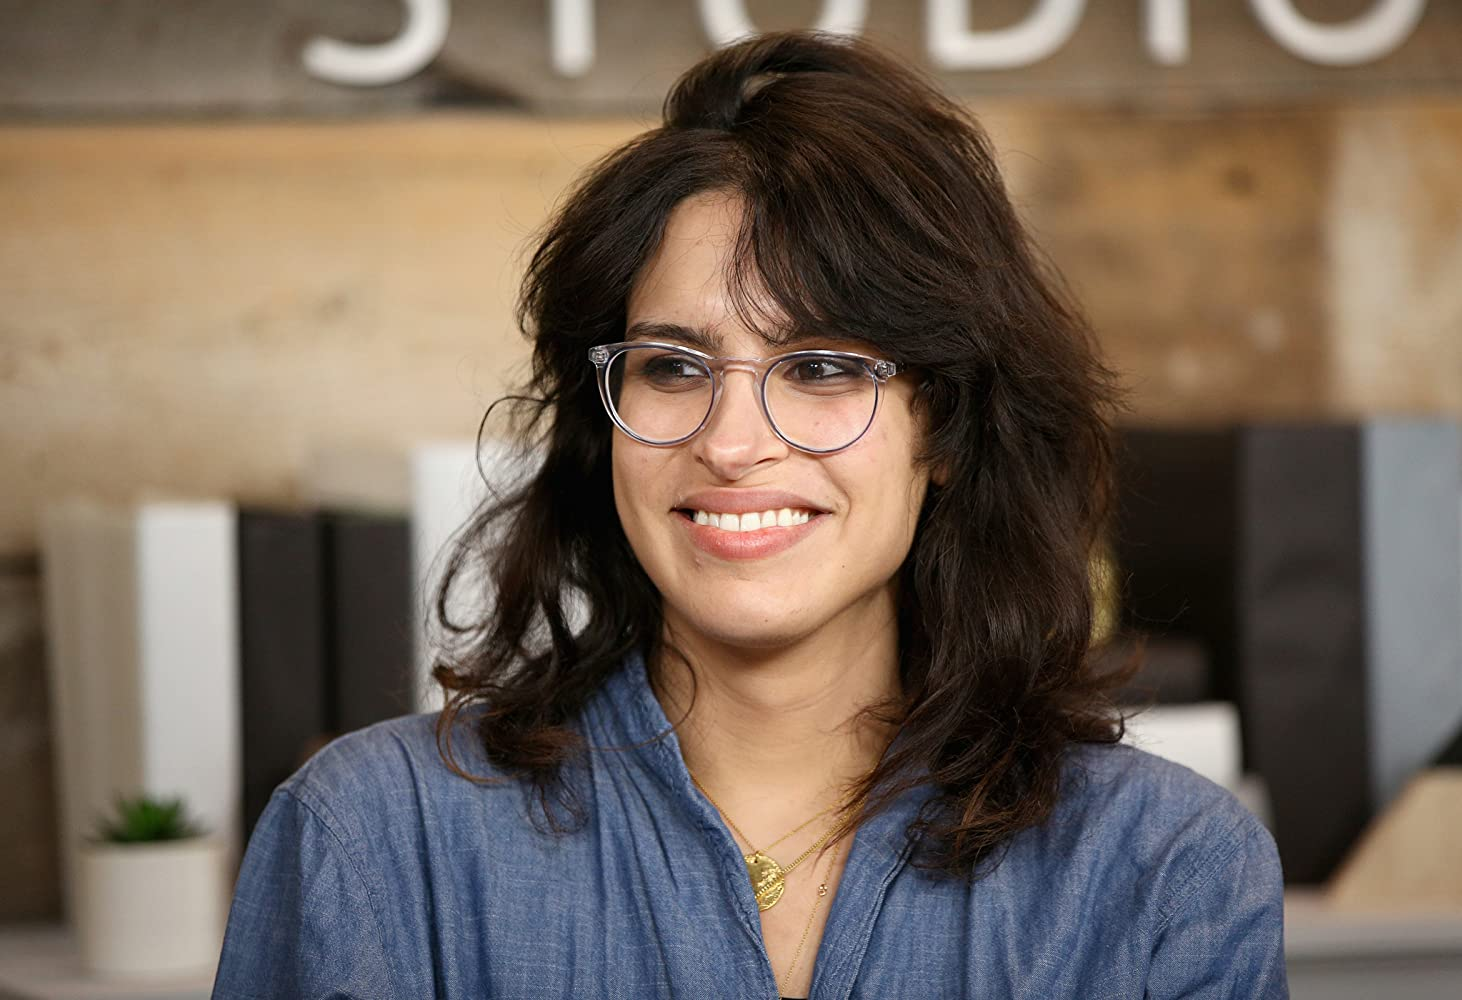 Desiree Akhavan at an event for The Miseducation of Cameron Post (2018)